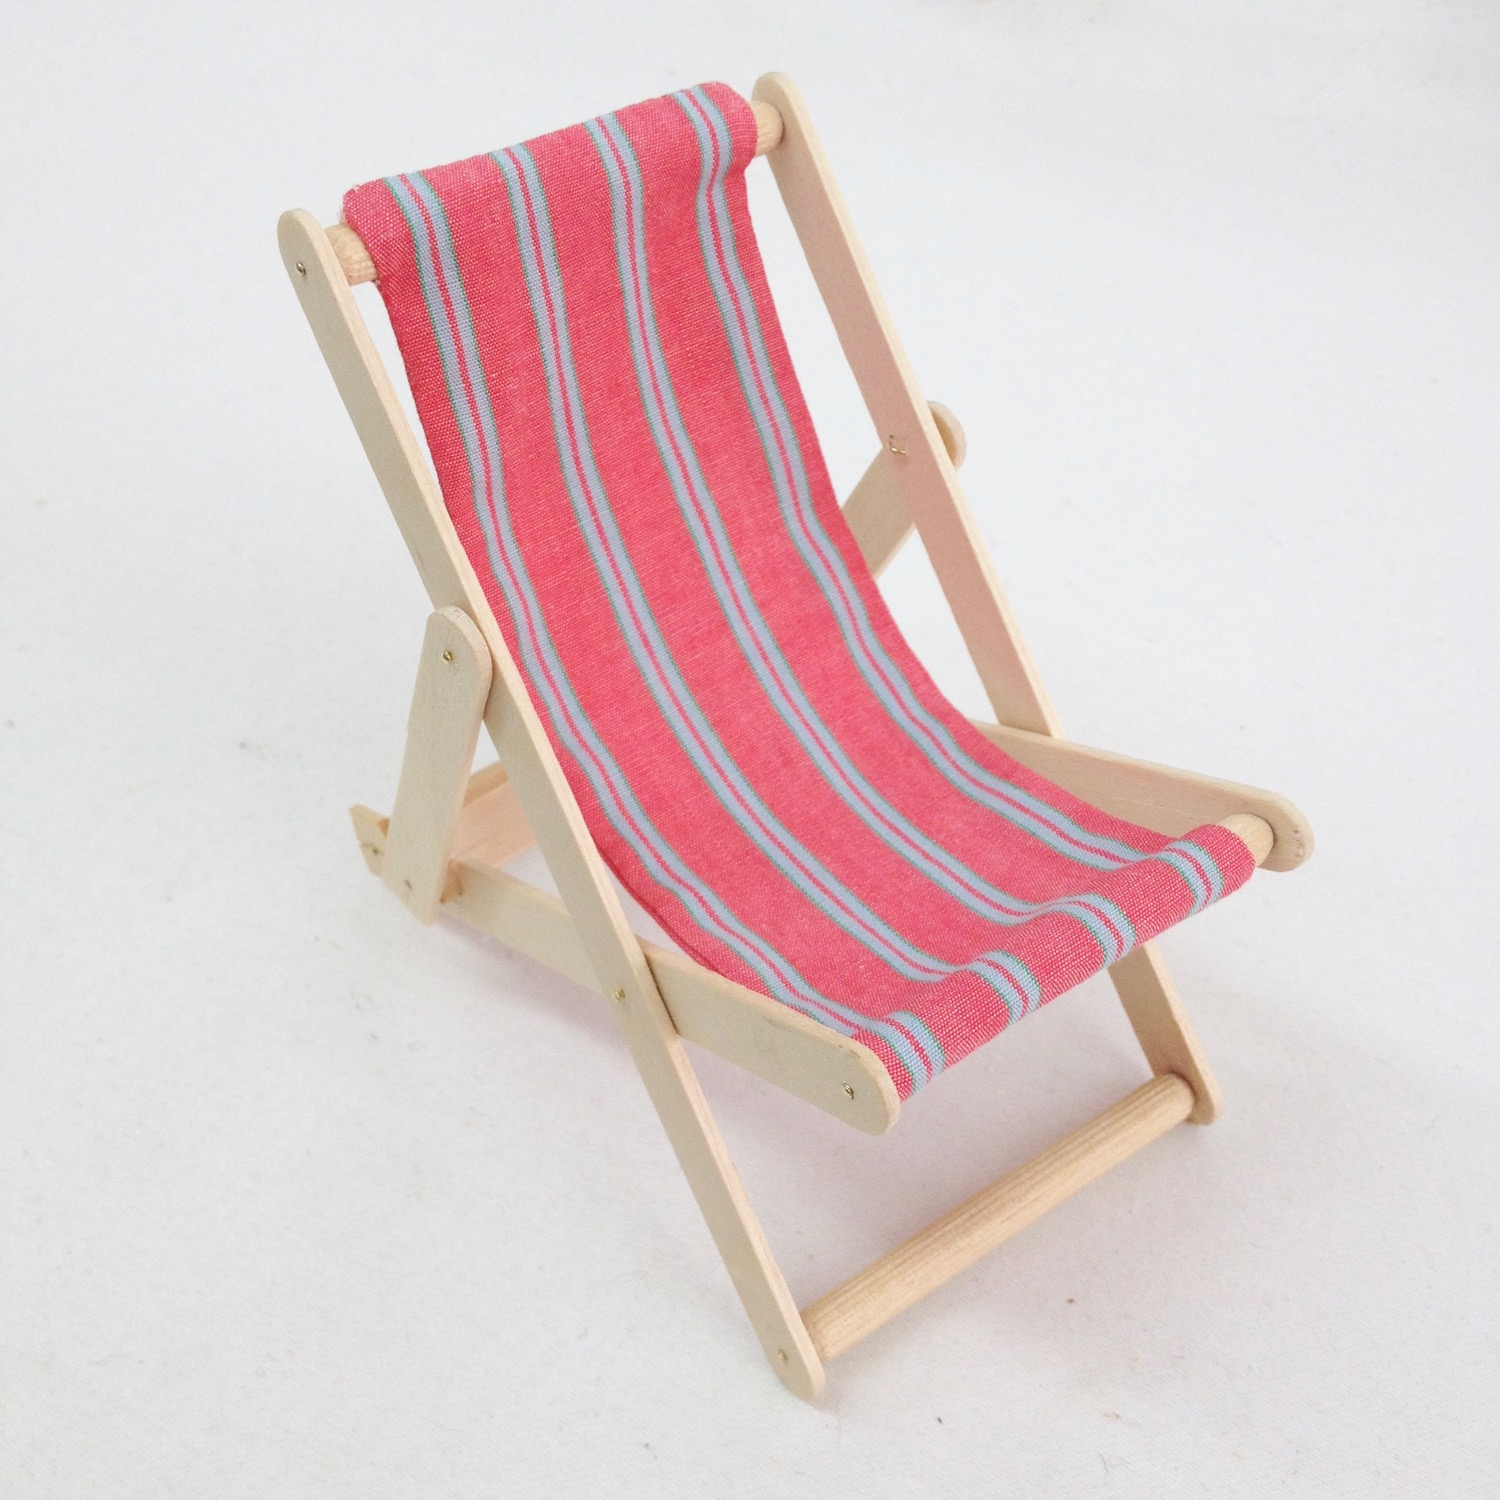 And there you are, a nice little deck chair!